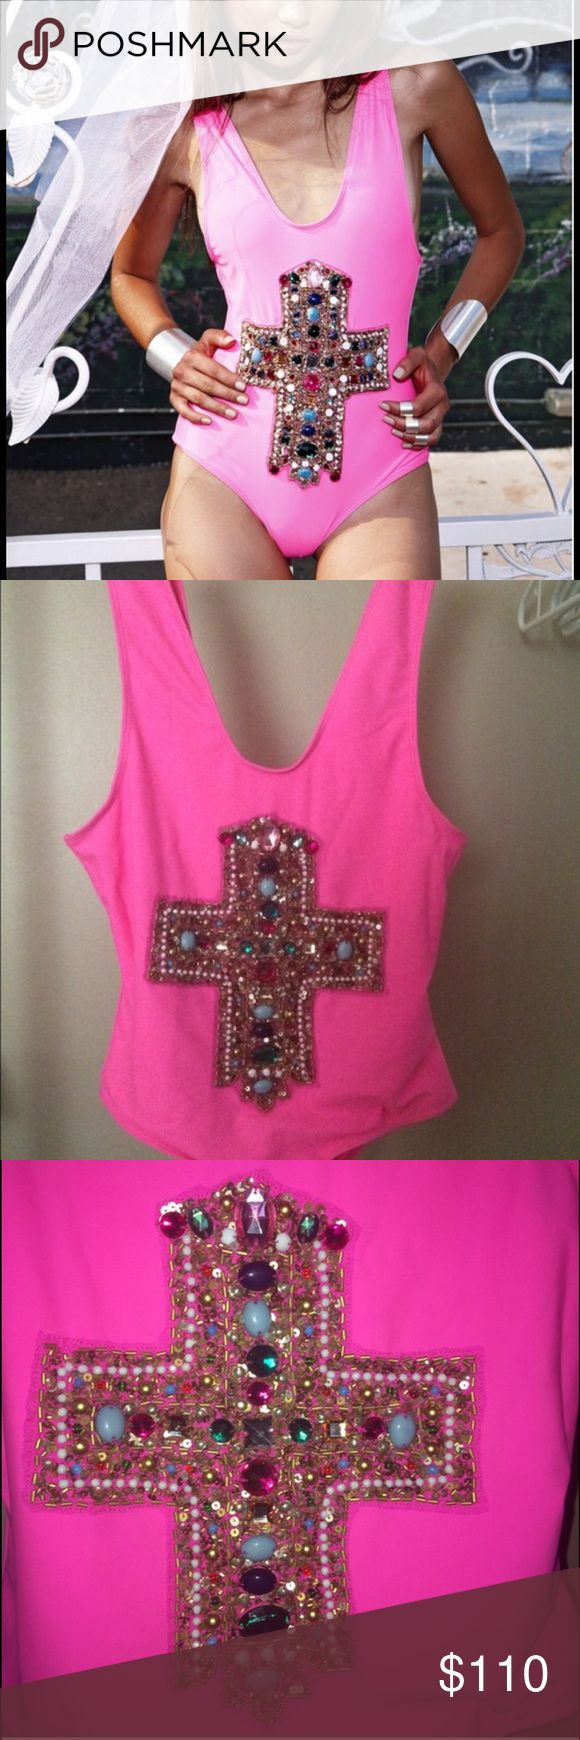 Beach Riot hot pink jewel encrusted cross onepiece SOLD OUT Beach Riot one piece with jewel encrusted cross! The color really pops and is perfectly cut in the front, sides and back. So cute! Beach Riot Swim One Pieces